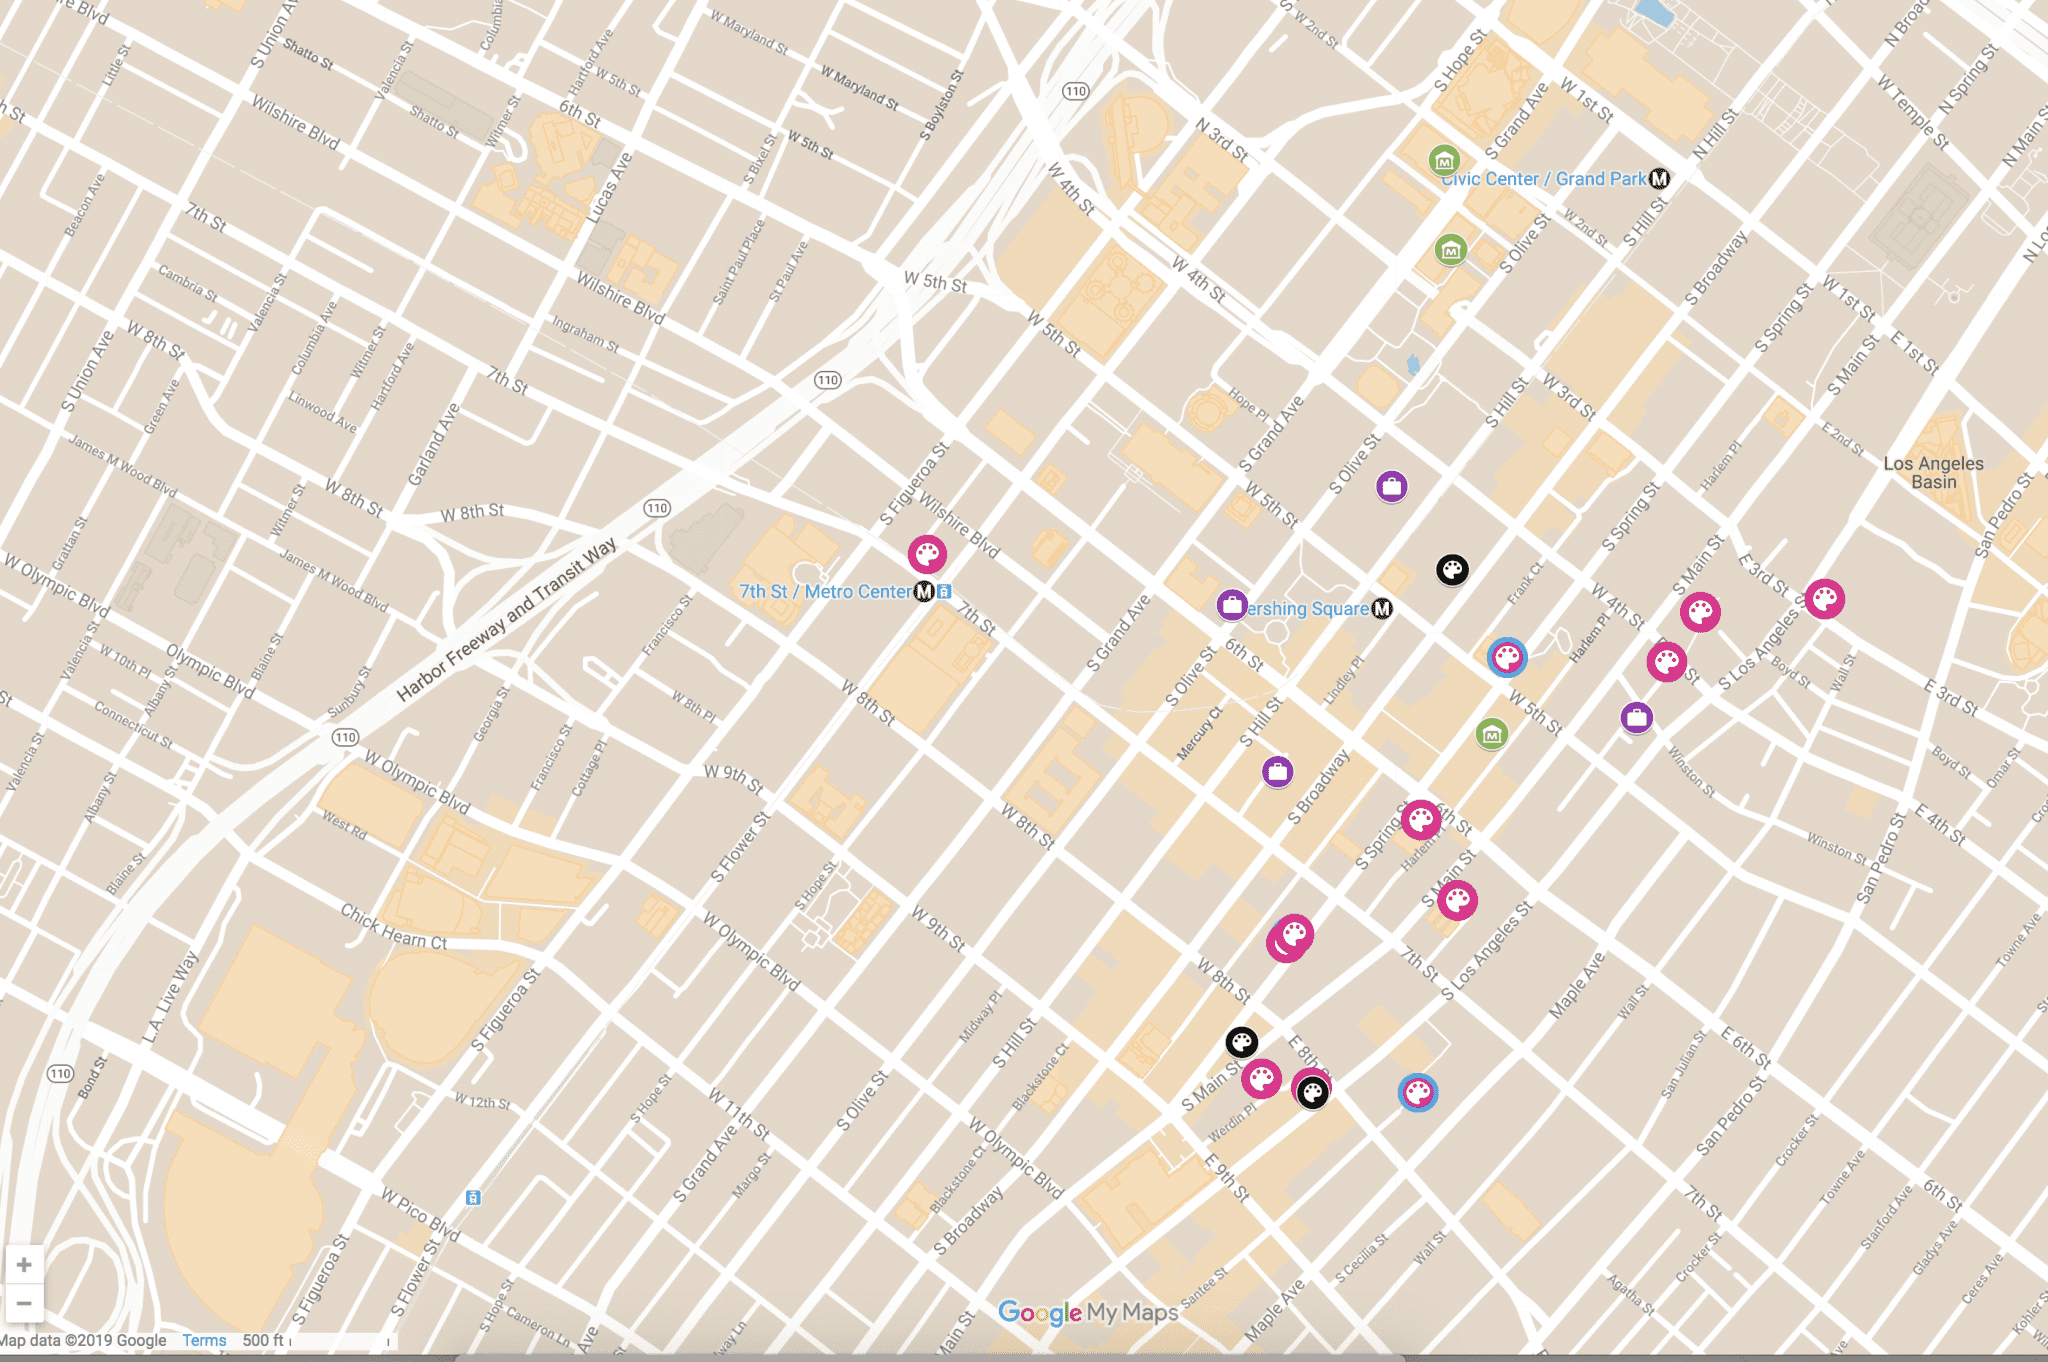 The Essential Guide To The Downtown Art Walk